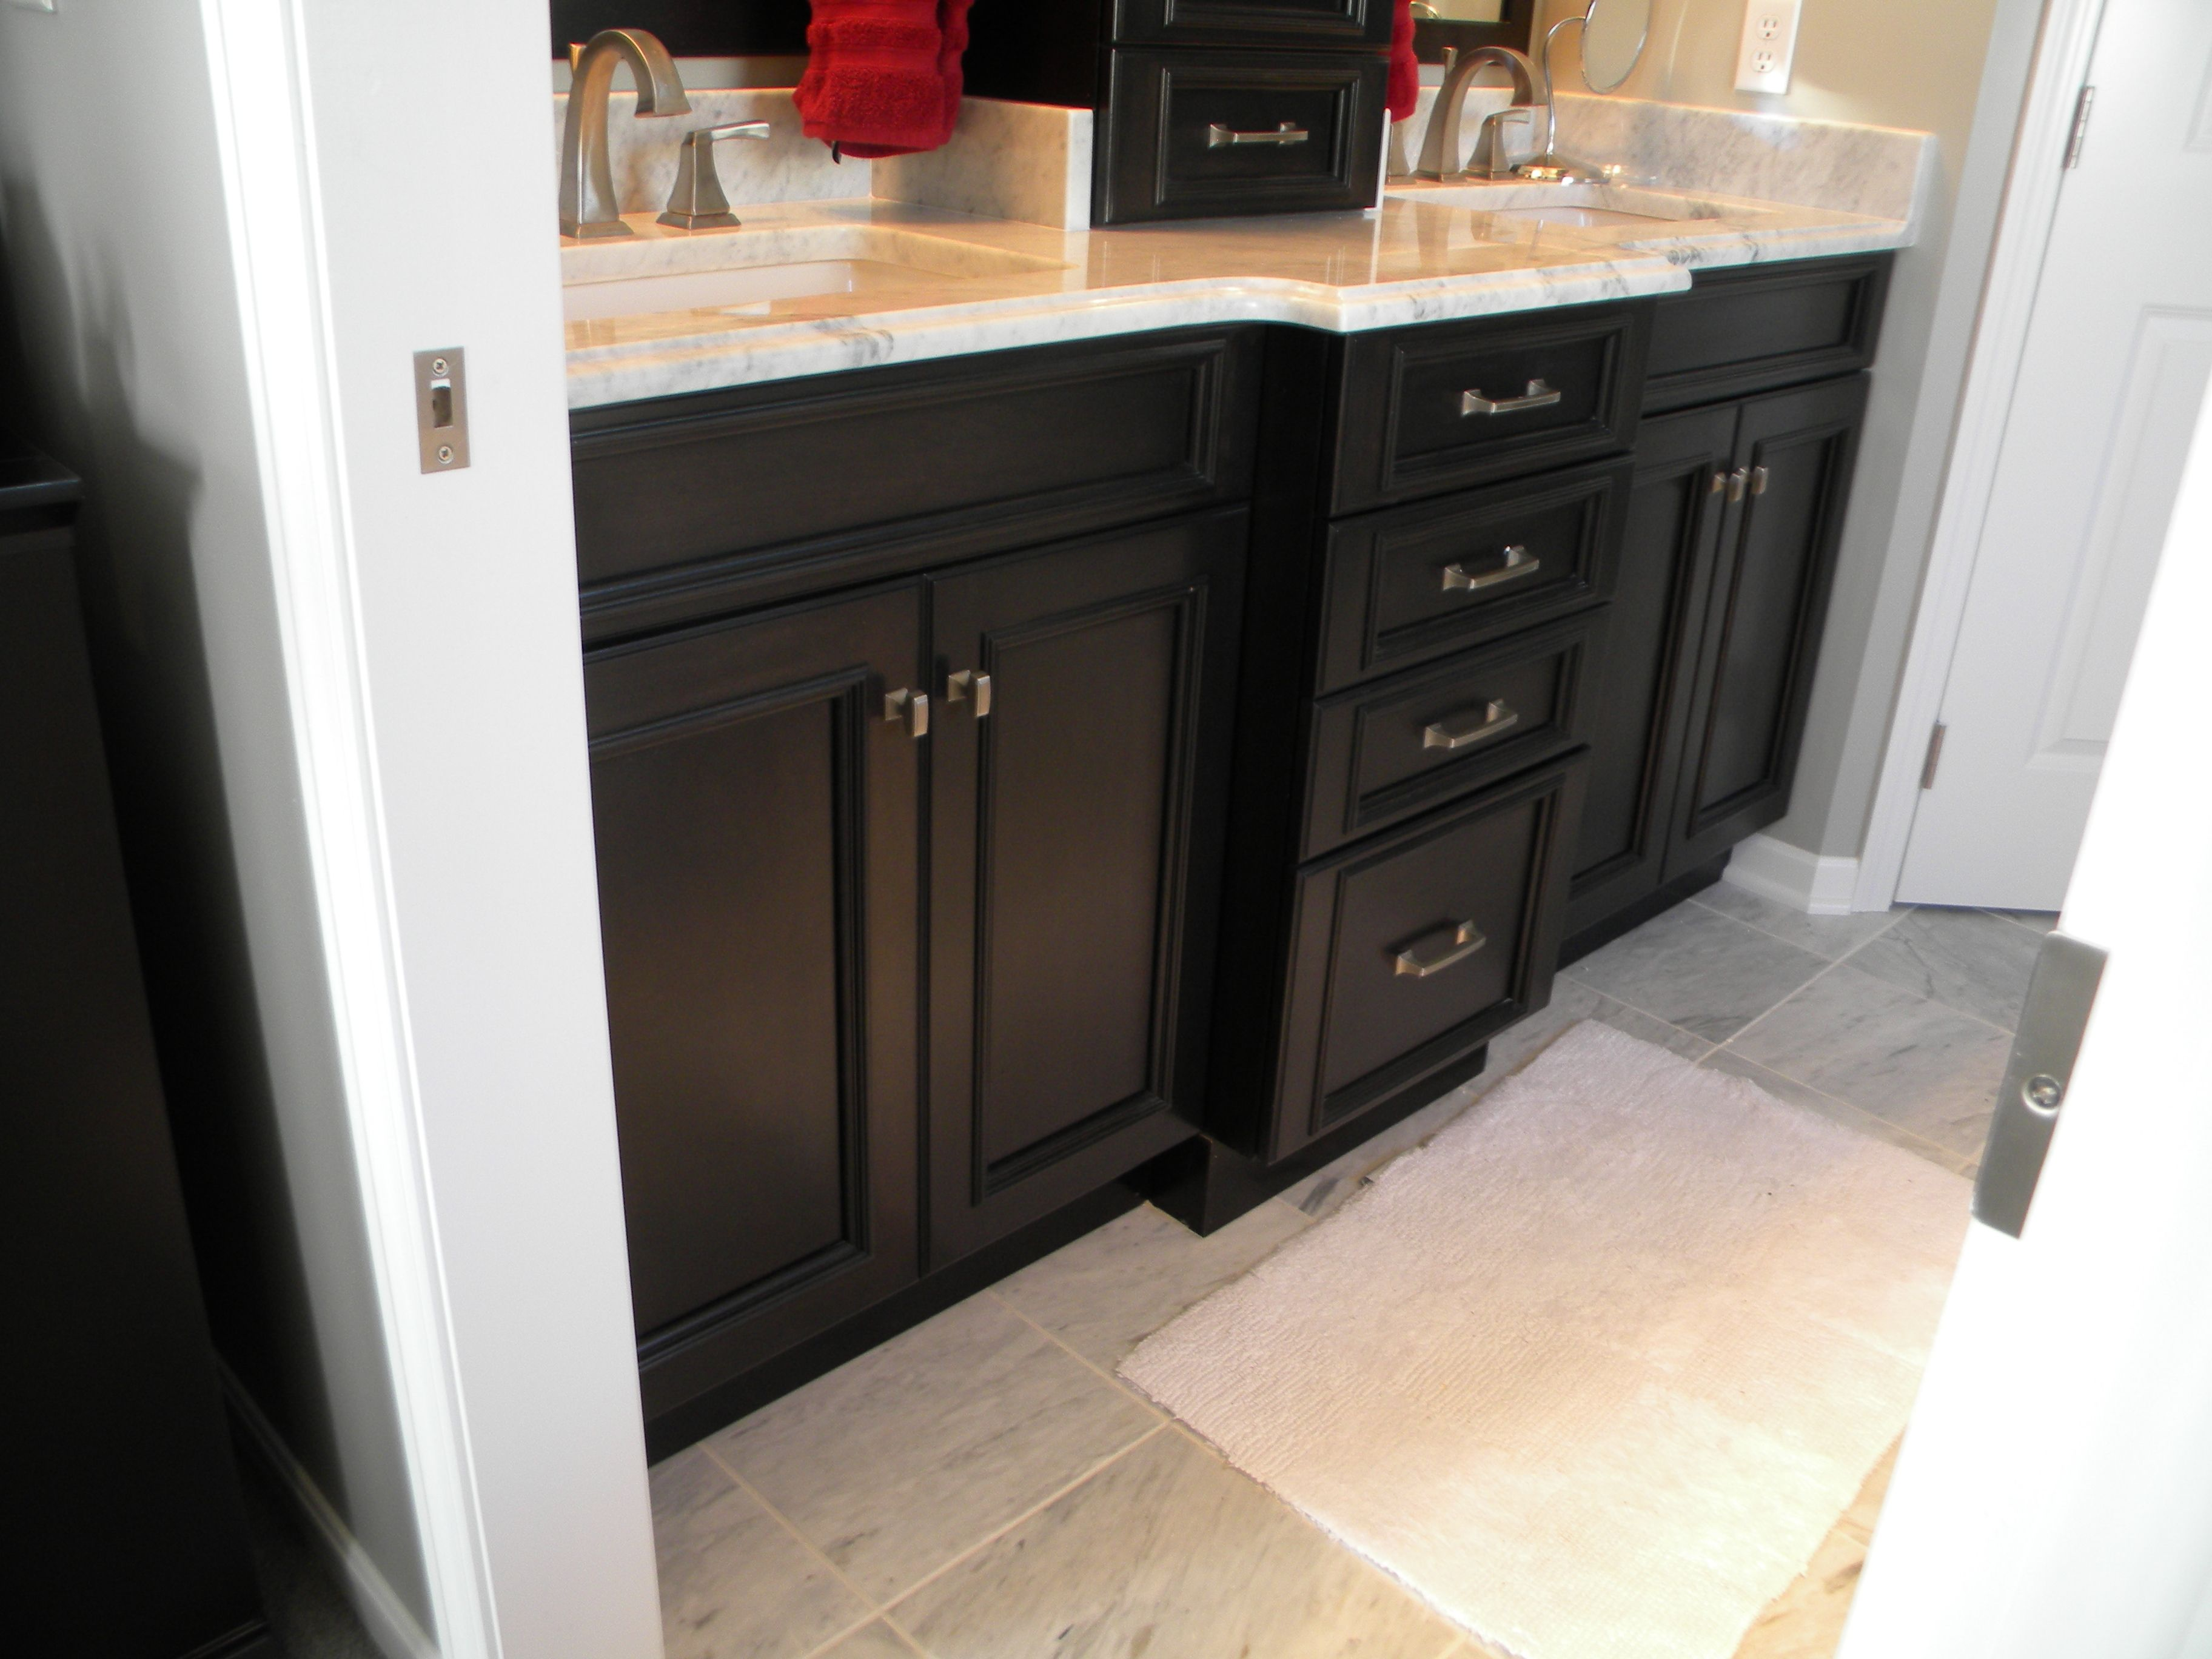 Holiday Kitchens Cabinets In A Knight Finish With Lincoln Door Style Dream Baths Columbus Ohio Bathroom Remodeling